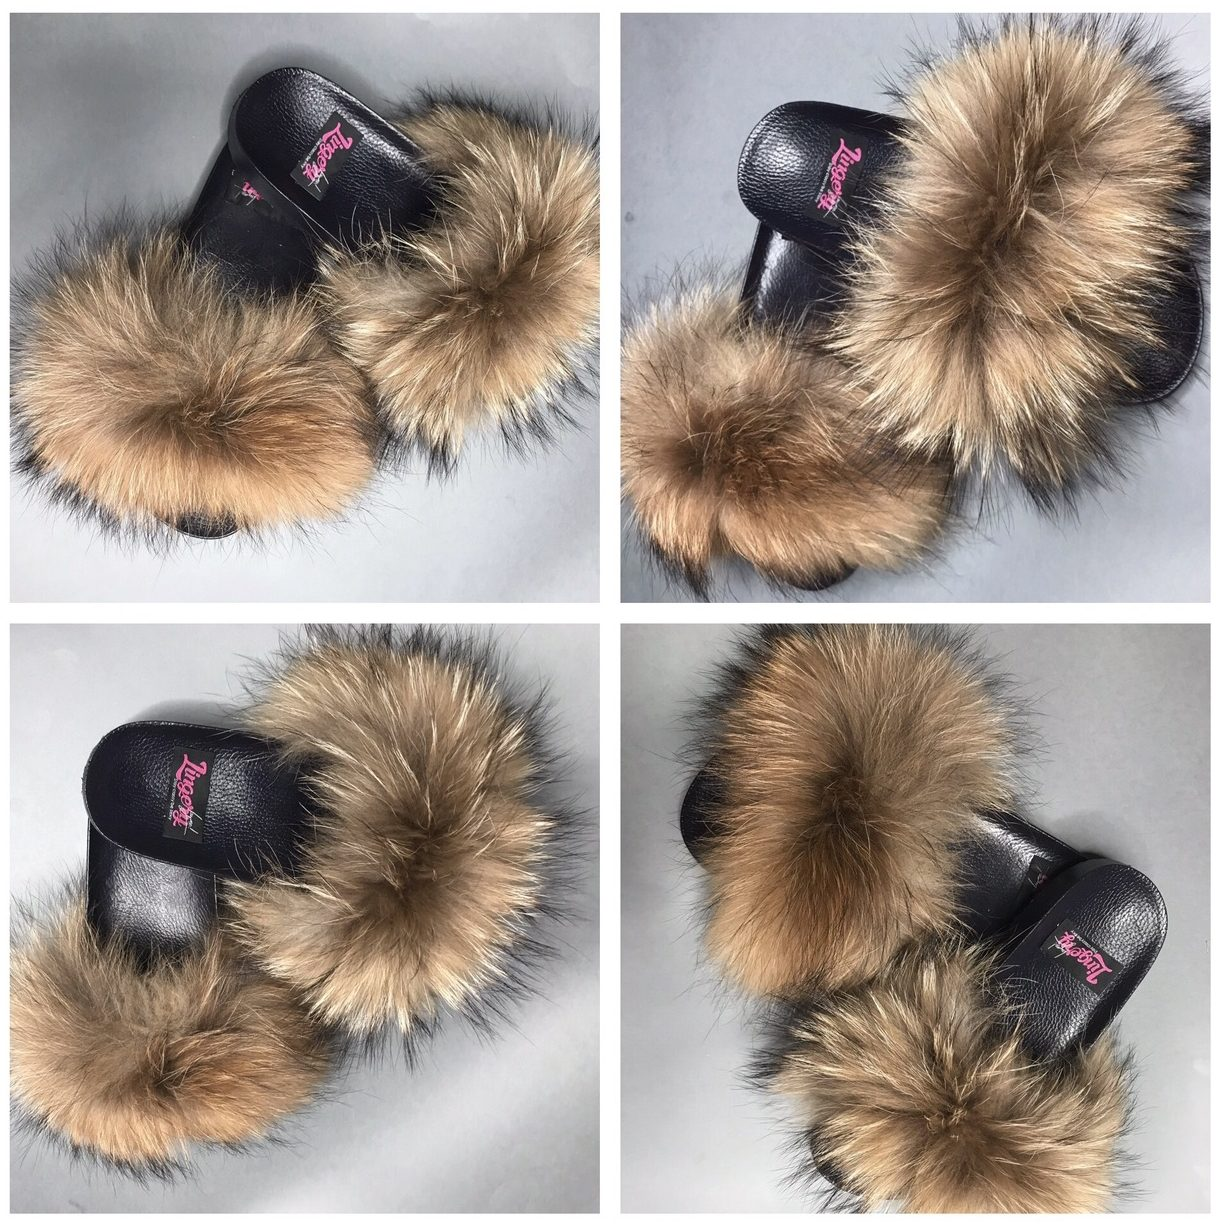 The fluffy slipper basic